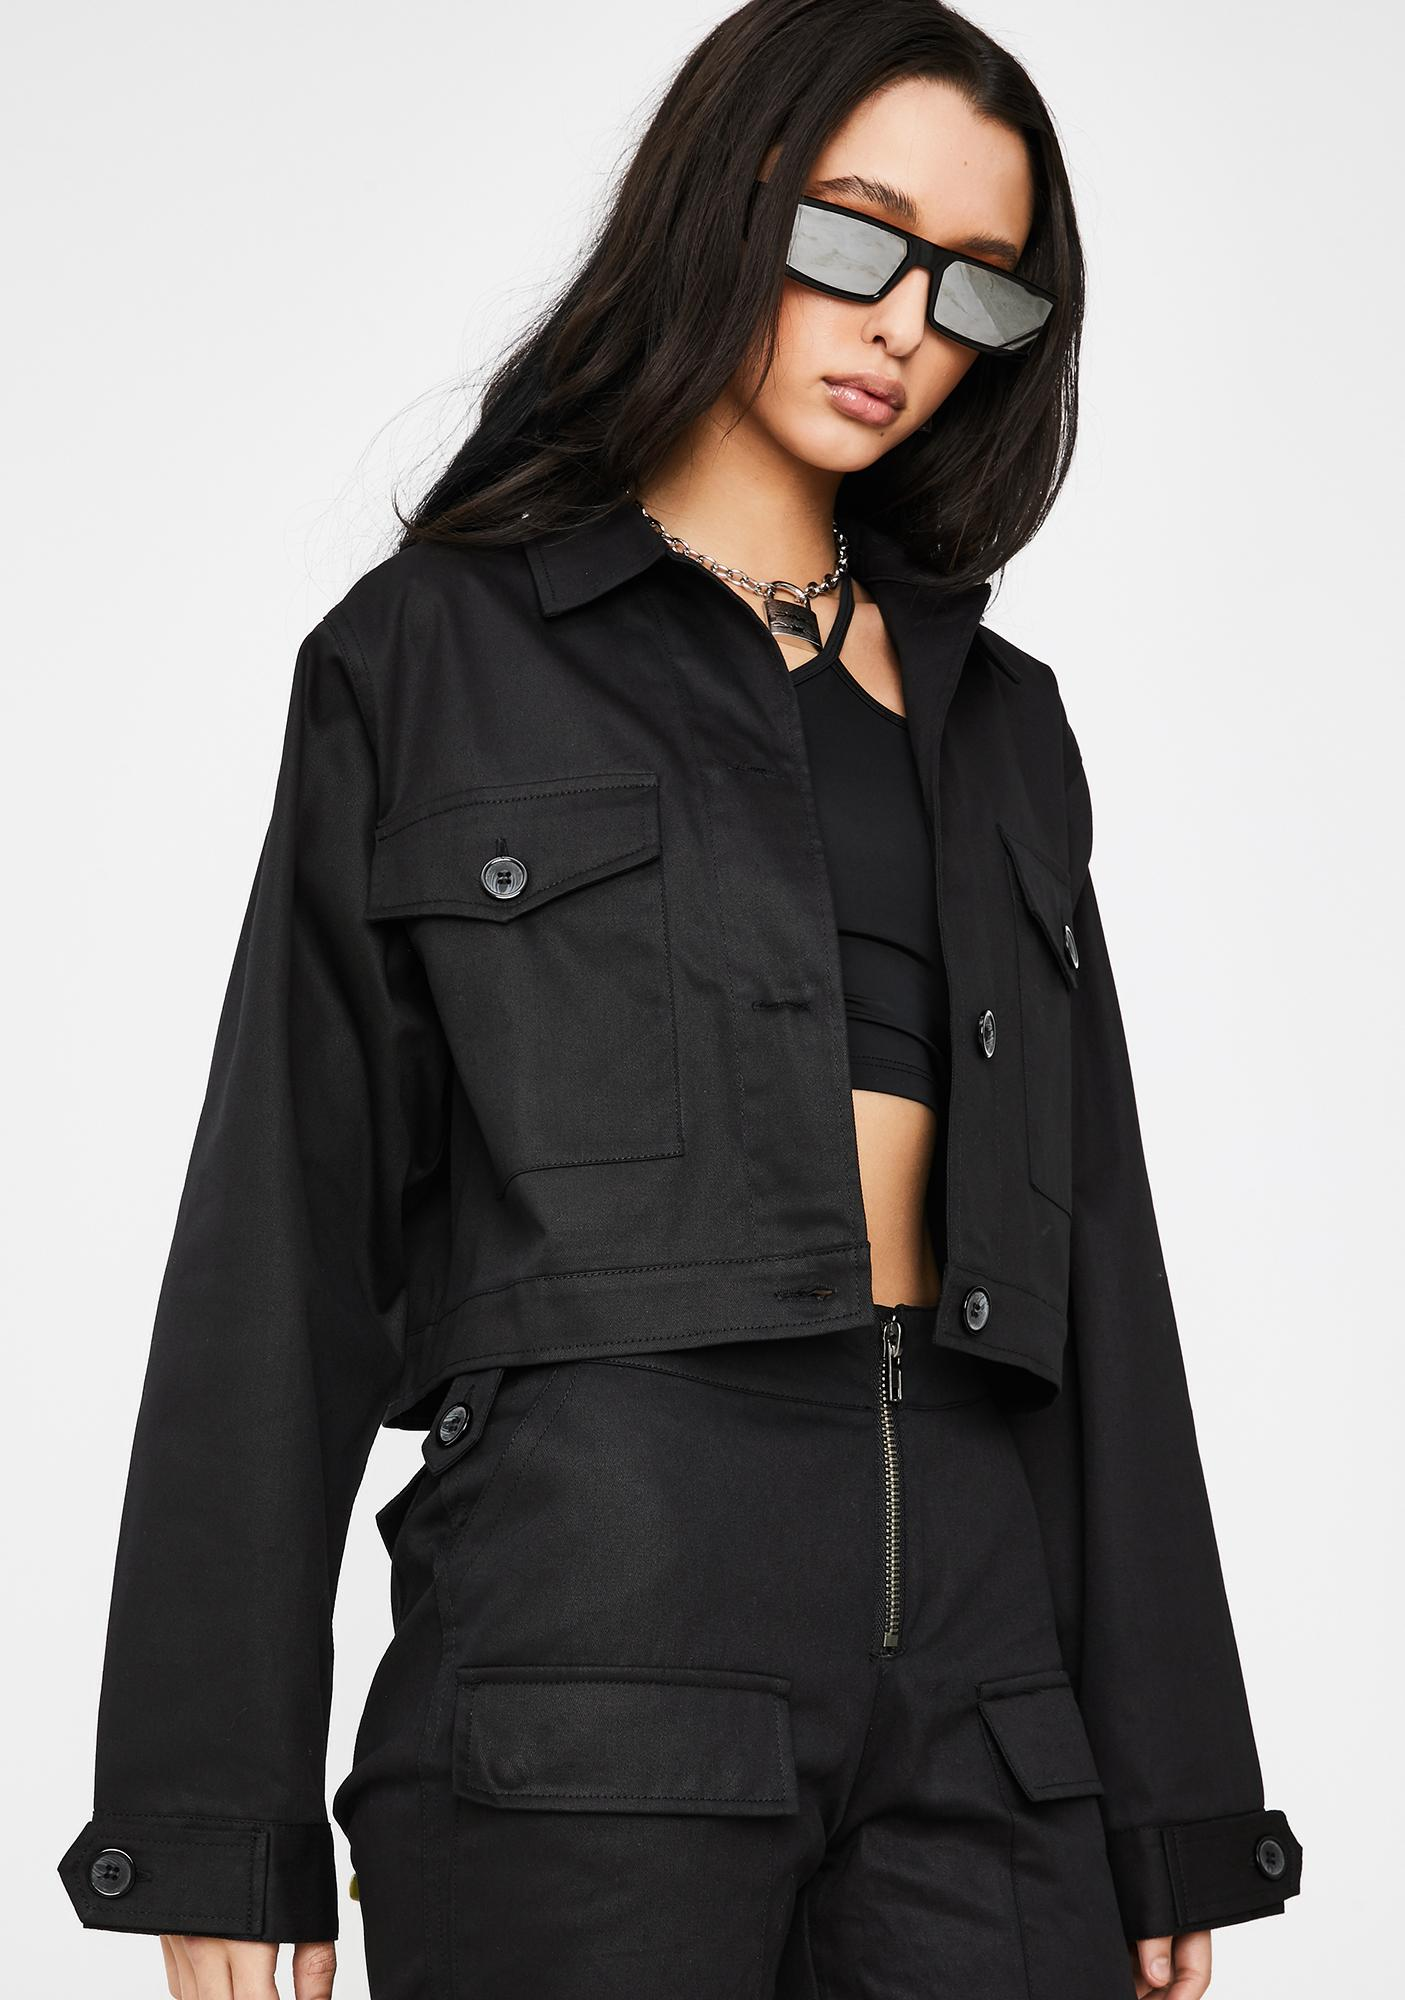 Poster Grl Late Meetings On Rodeo Utility Jacket